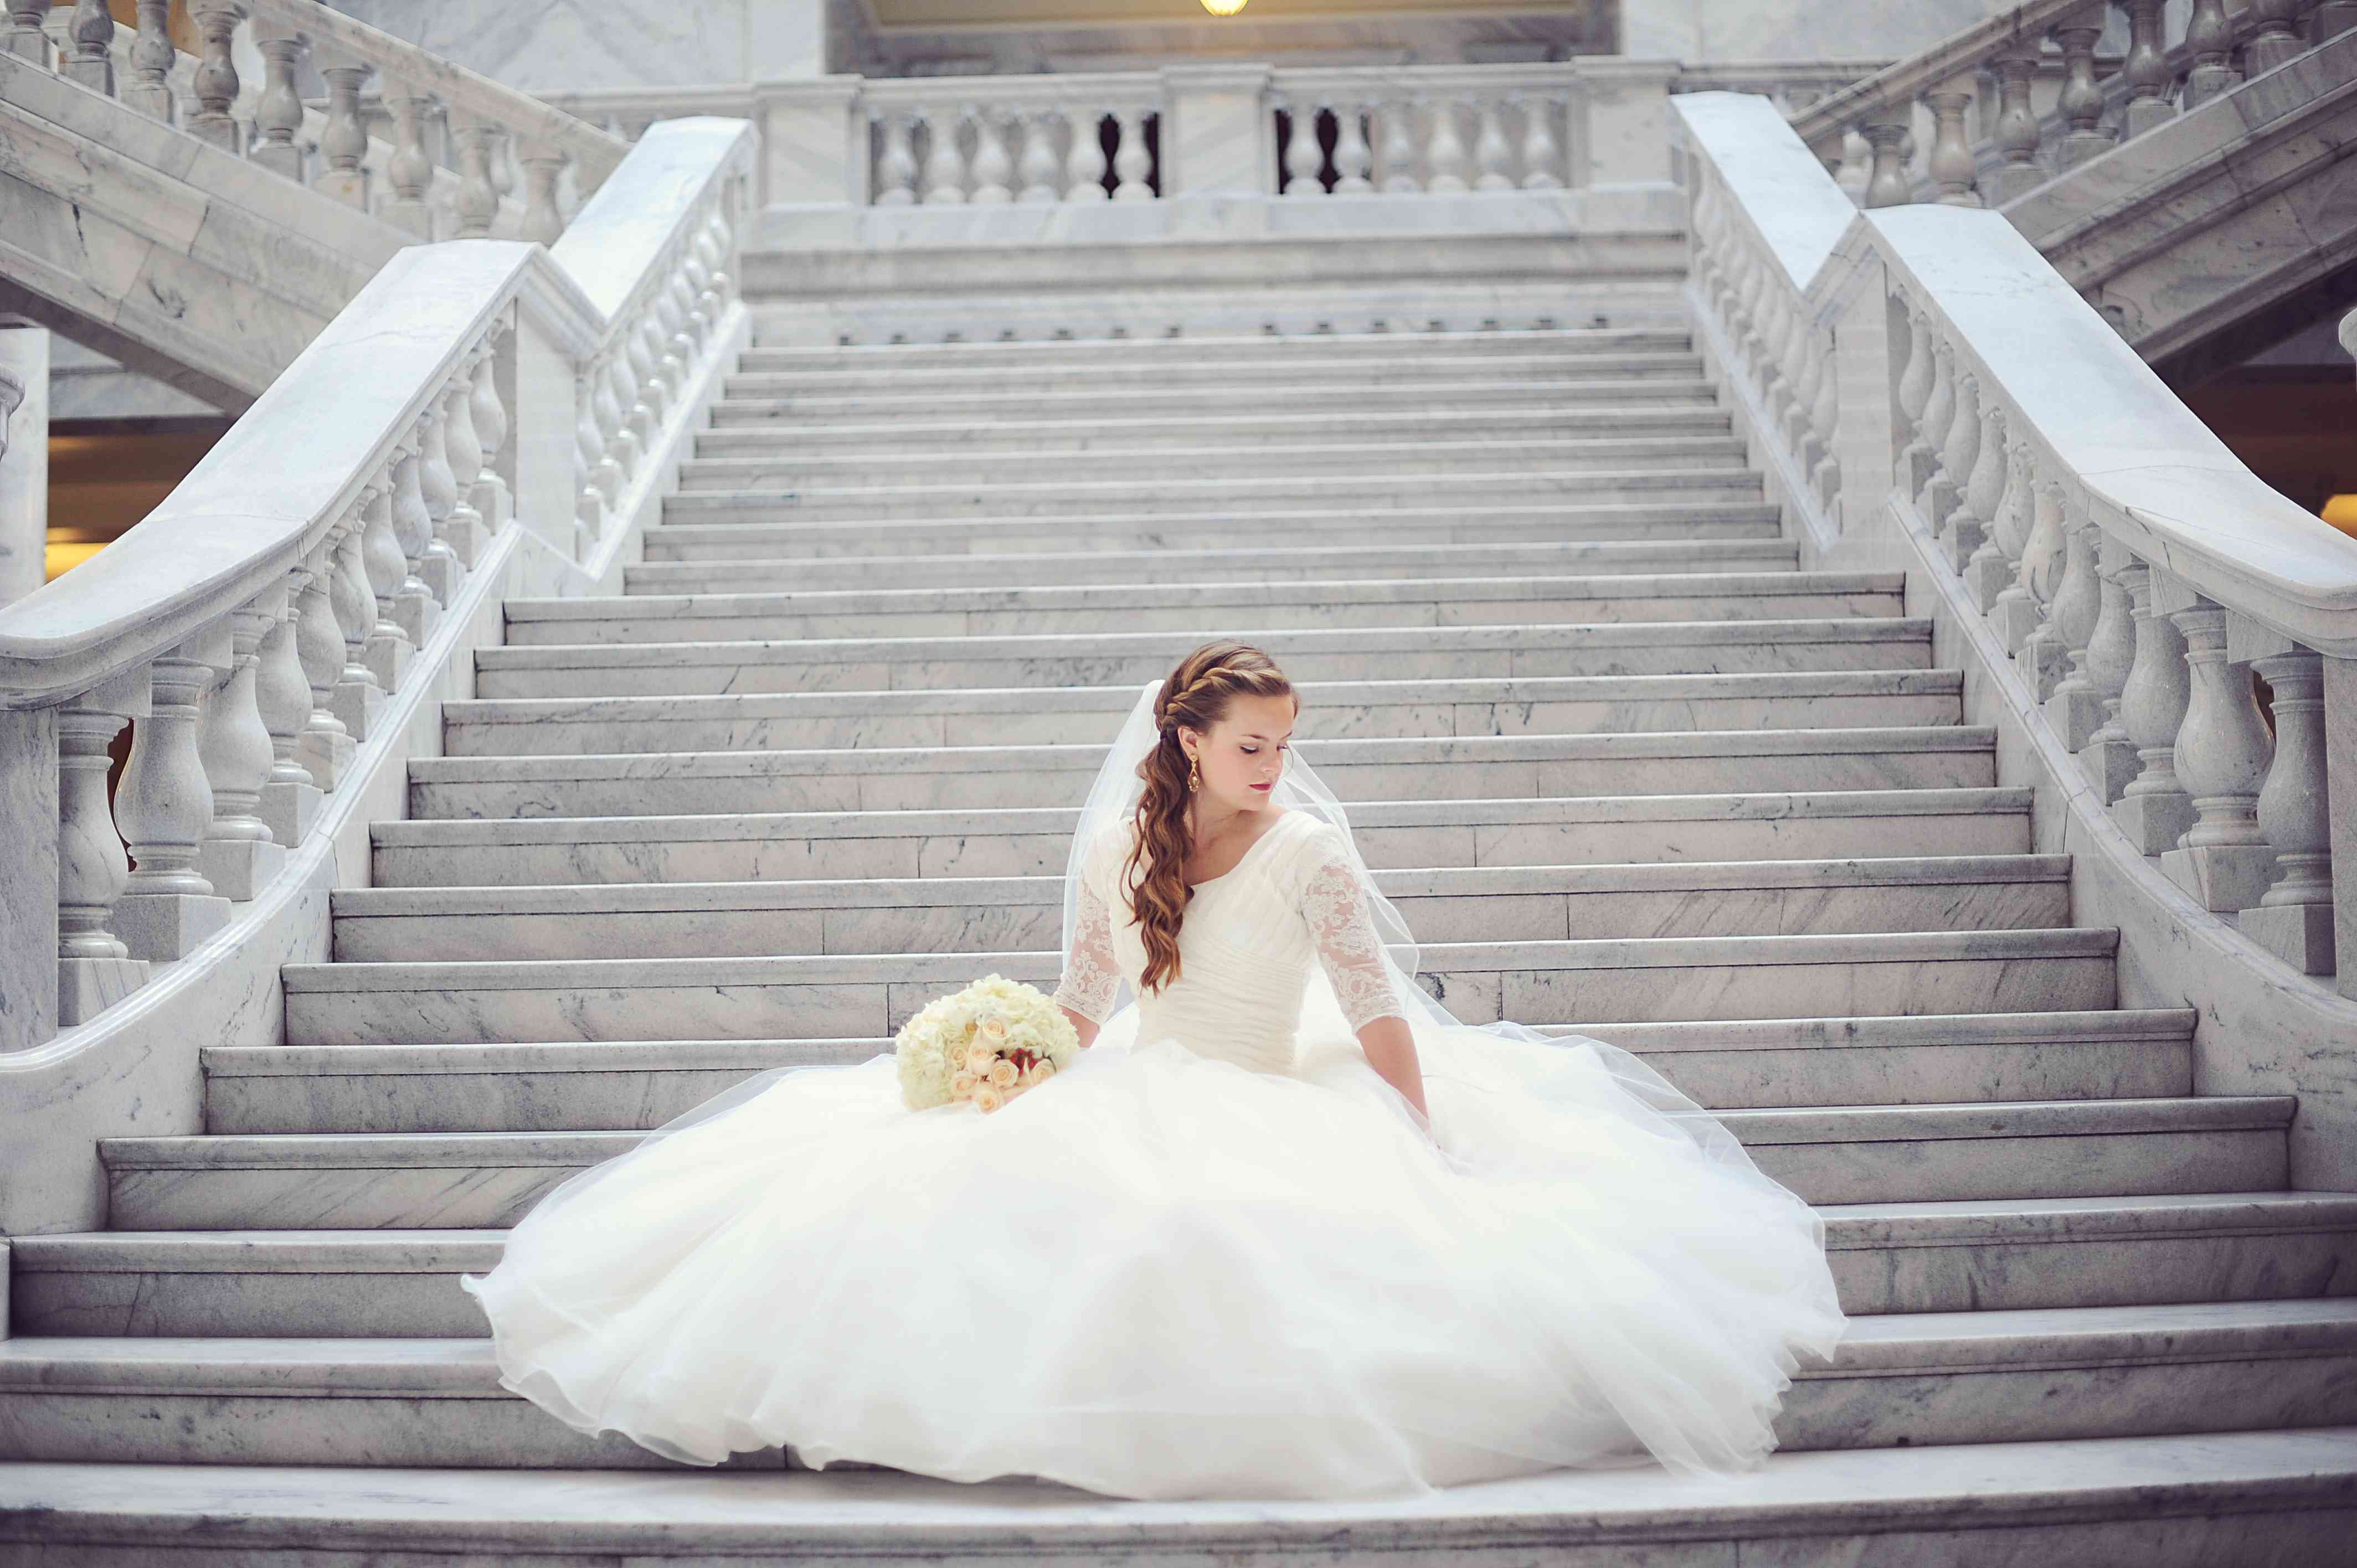 Bride Sitting on Staircase in Wedding Dress